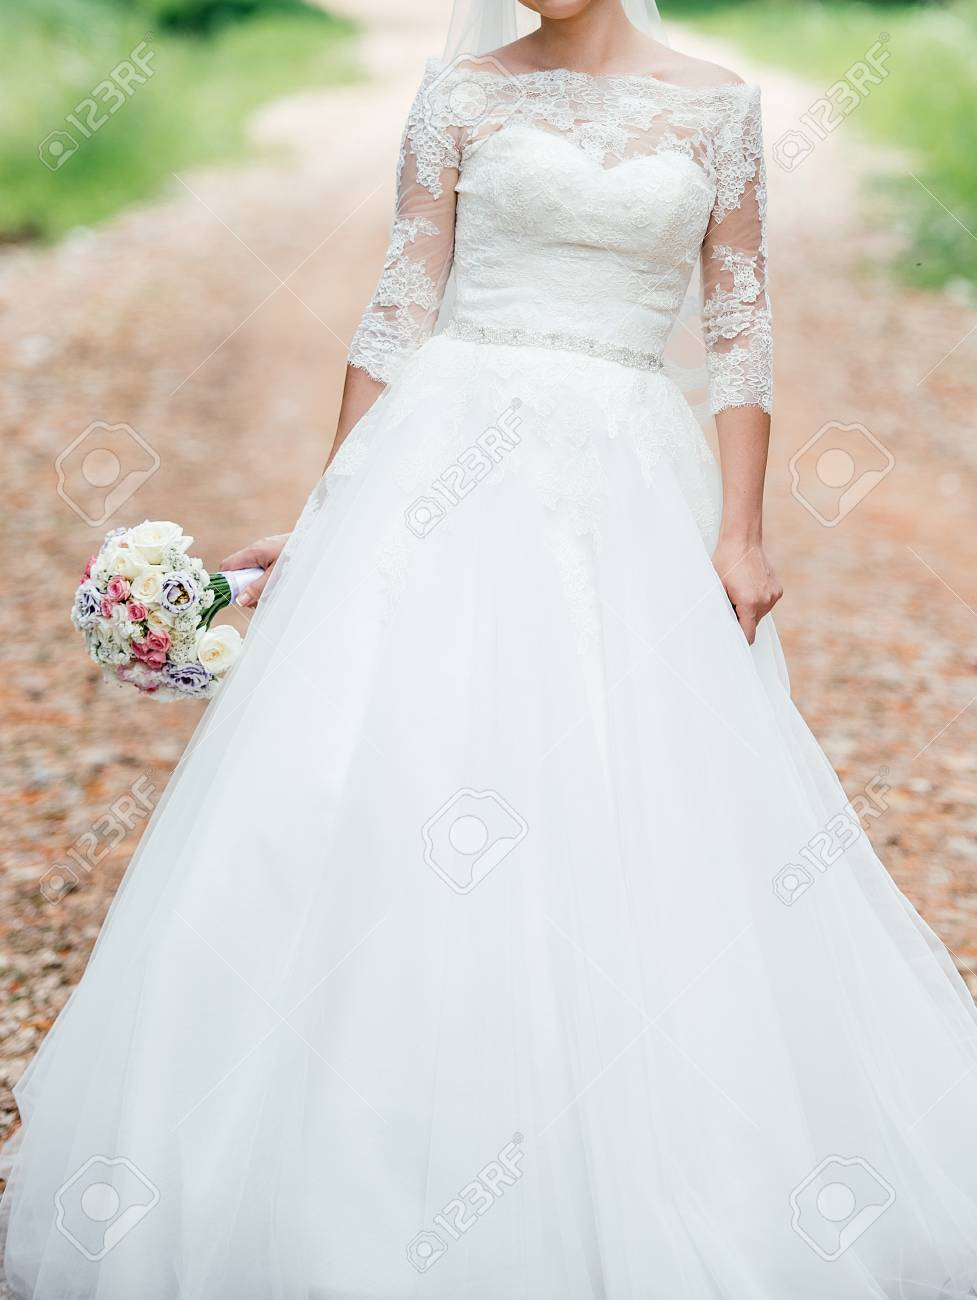 Beautiful Bride In White Lace Wedding Dress With Wedding Bouquet ...